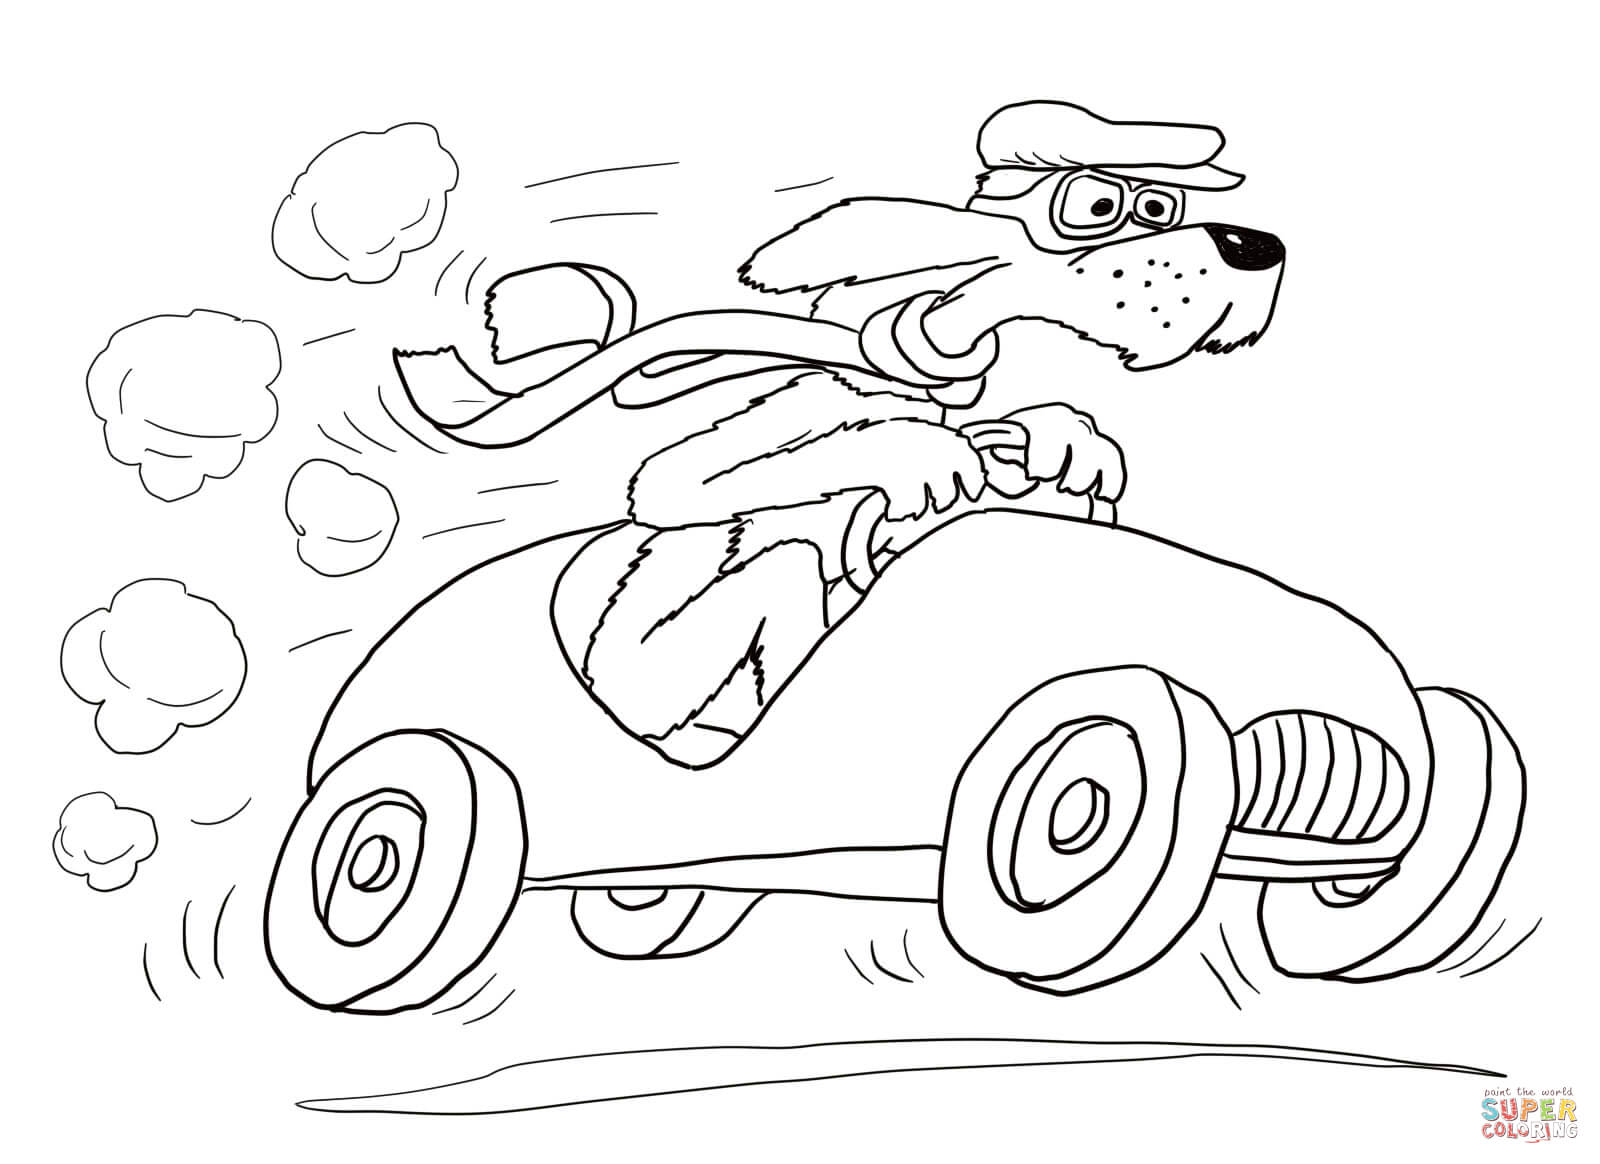 Go Dog Go Coloring Page